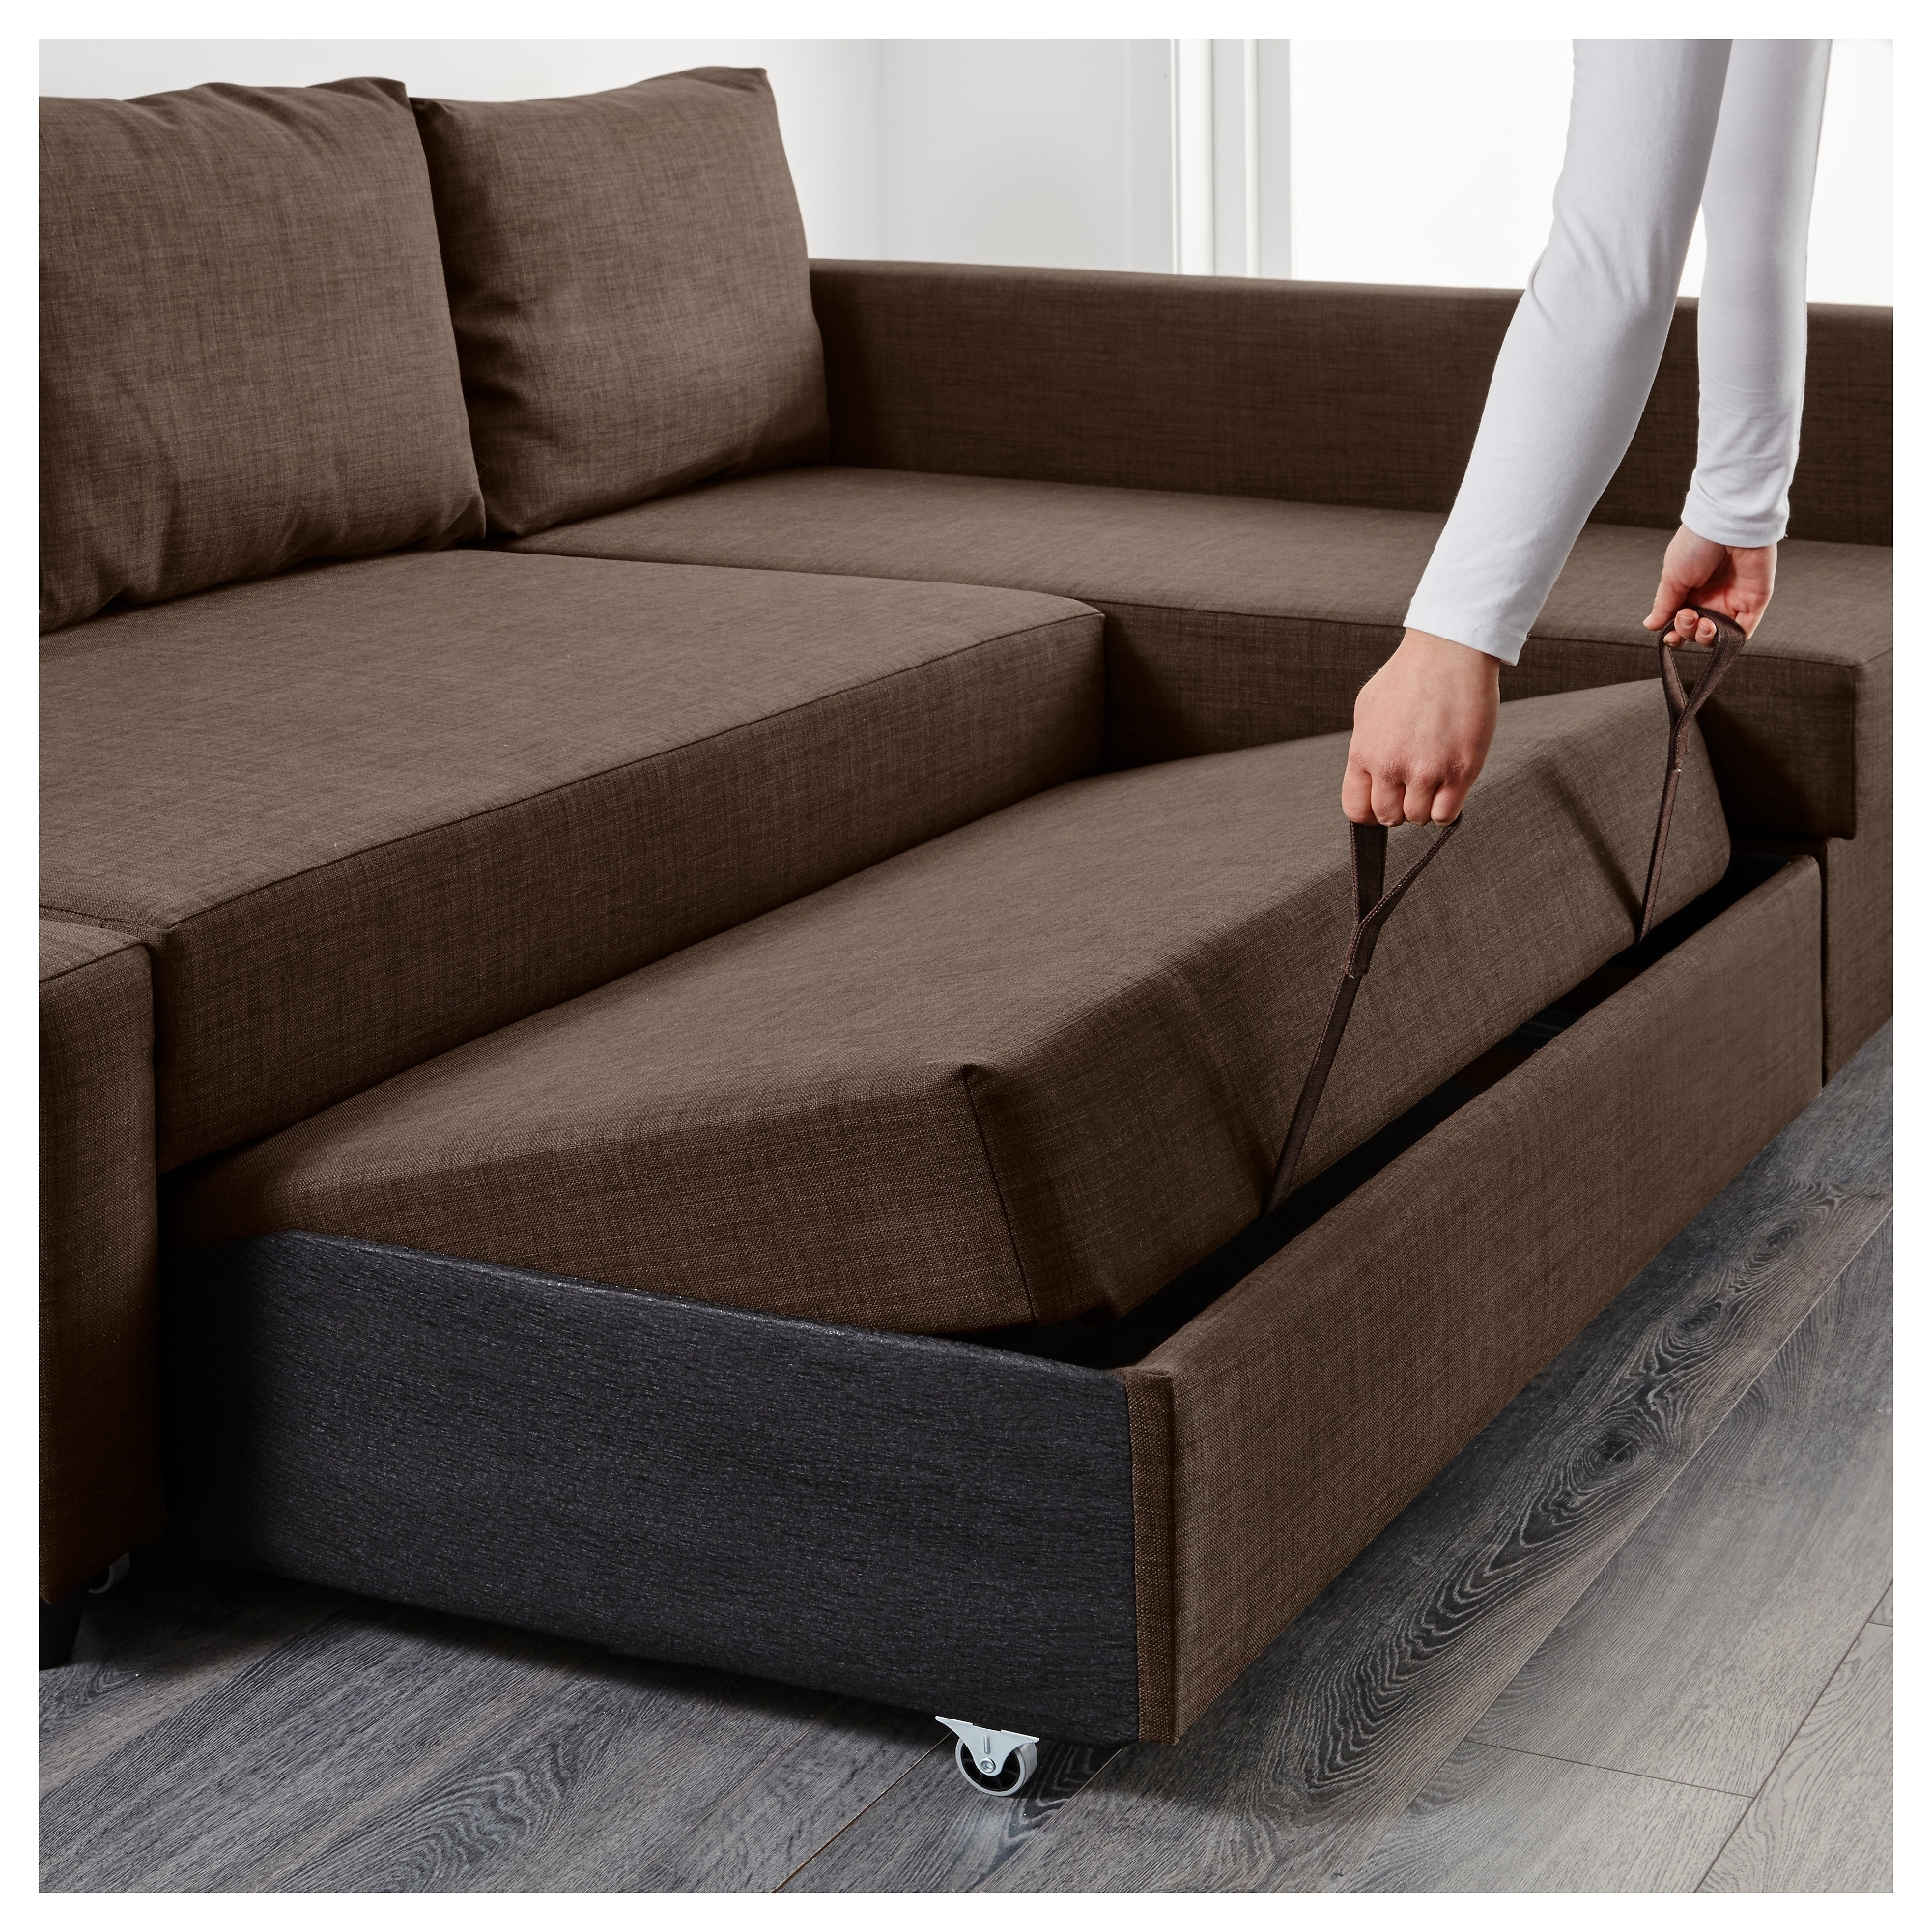 Widely Used Friheten Sleeper Sectional,3 Seat W/storage – Skiftebo Dark Gray In Sleeper Sectional Sofas (View 18 of 20)